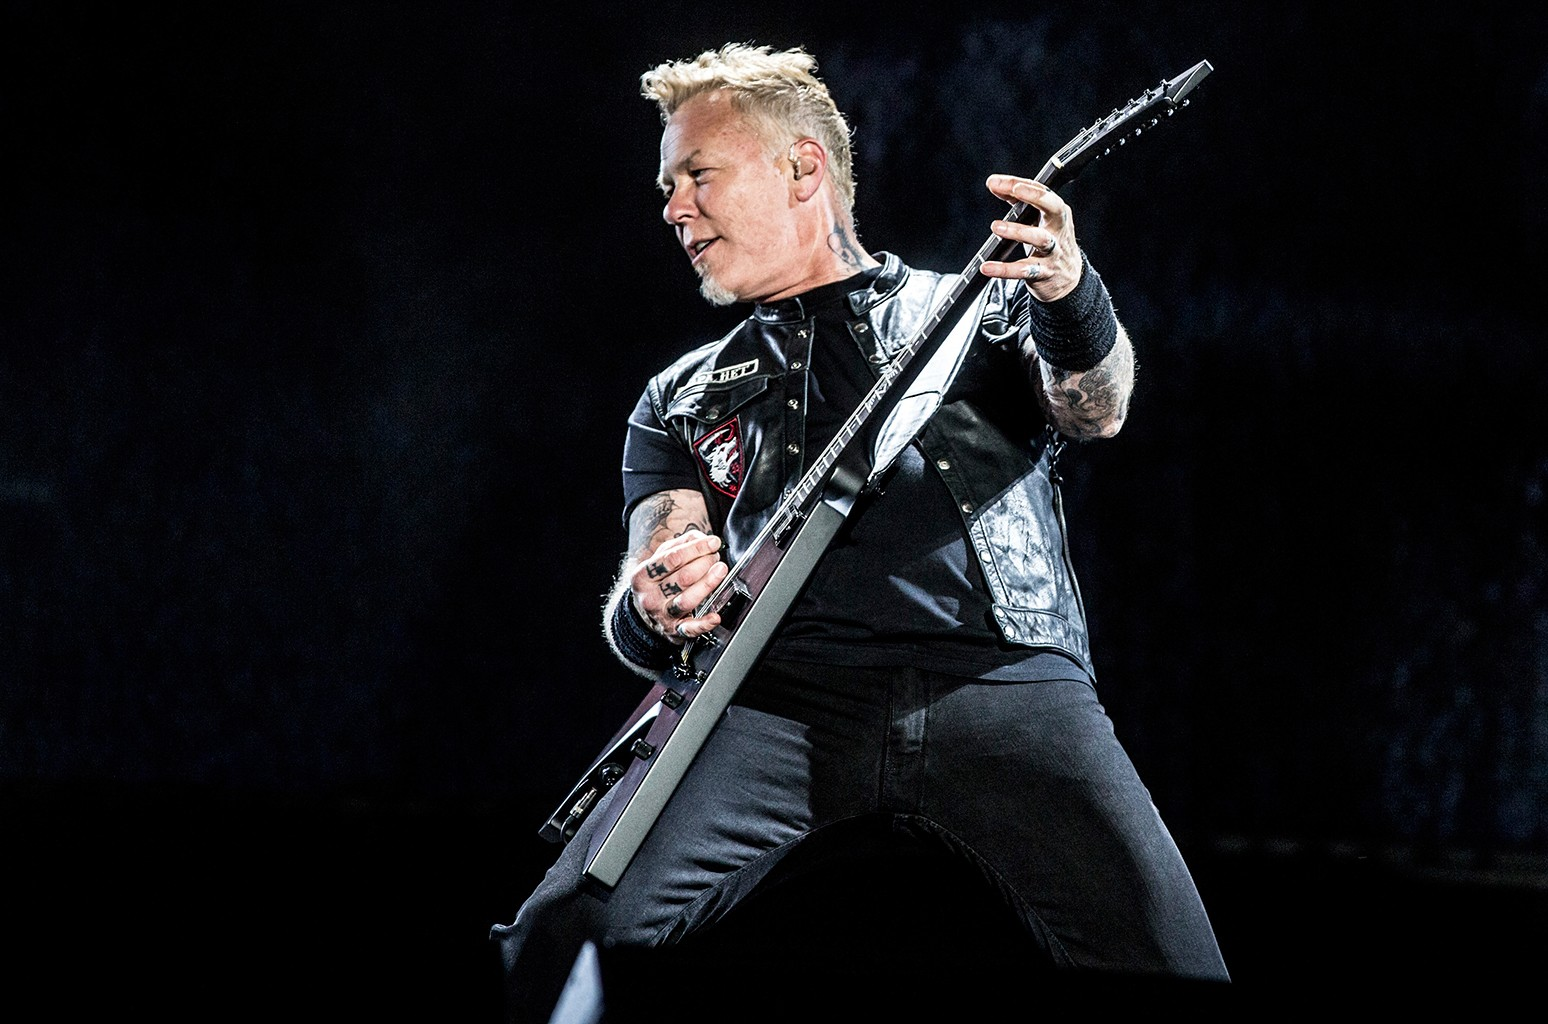 James Hetfield singer of Metallica performs on stage during day 1 of Lollapalooza Argentina at Hipodromo de San Isidro on March 31, 2017 in San Isidro, Argentina.